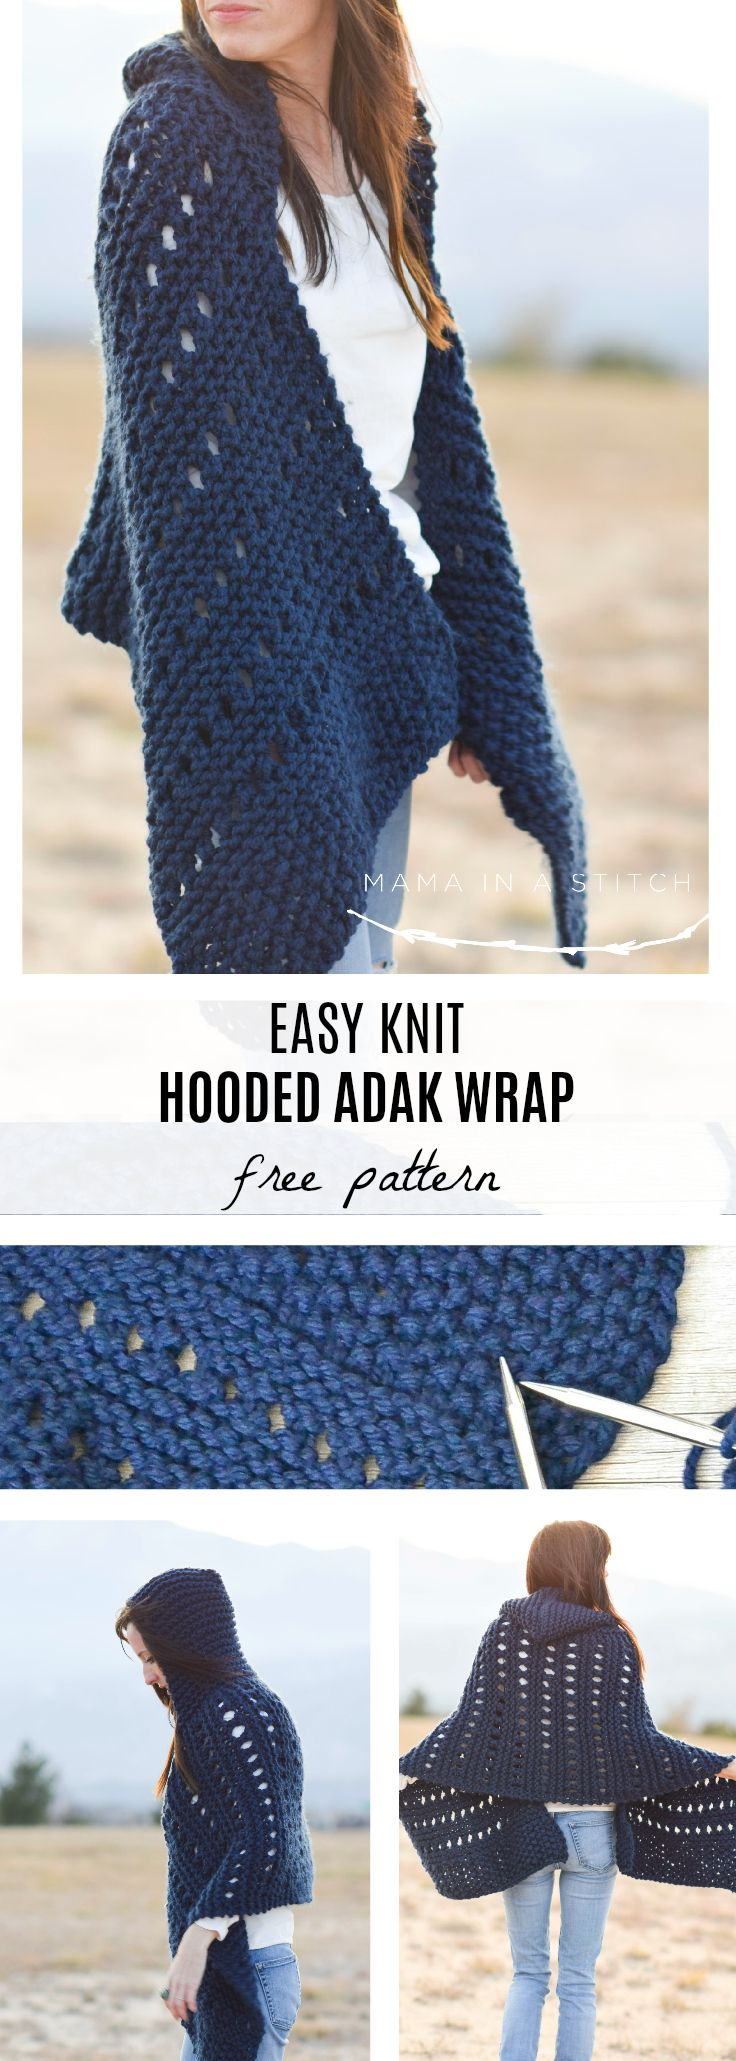 Hooded Knit Adak Wrap Pattern via @MamaInAStitch Such a pretty, free knitting pattern! It's made with super easy stitches and looks so cozy with the hood. #crafts #diy